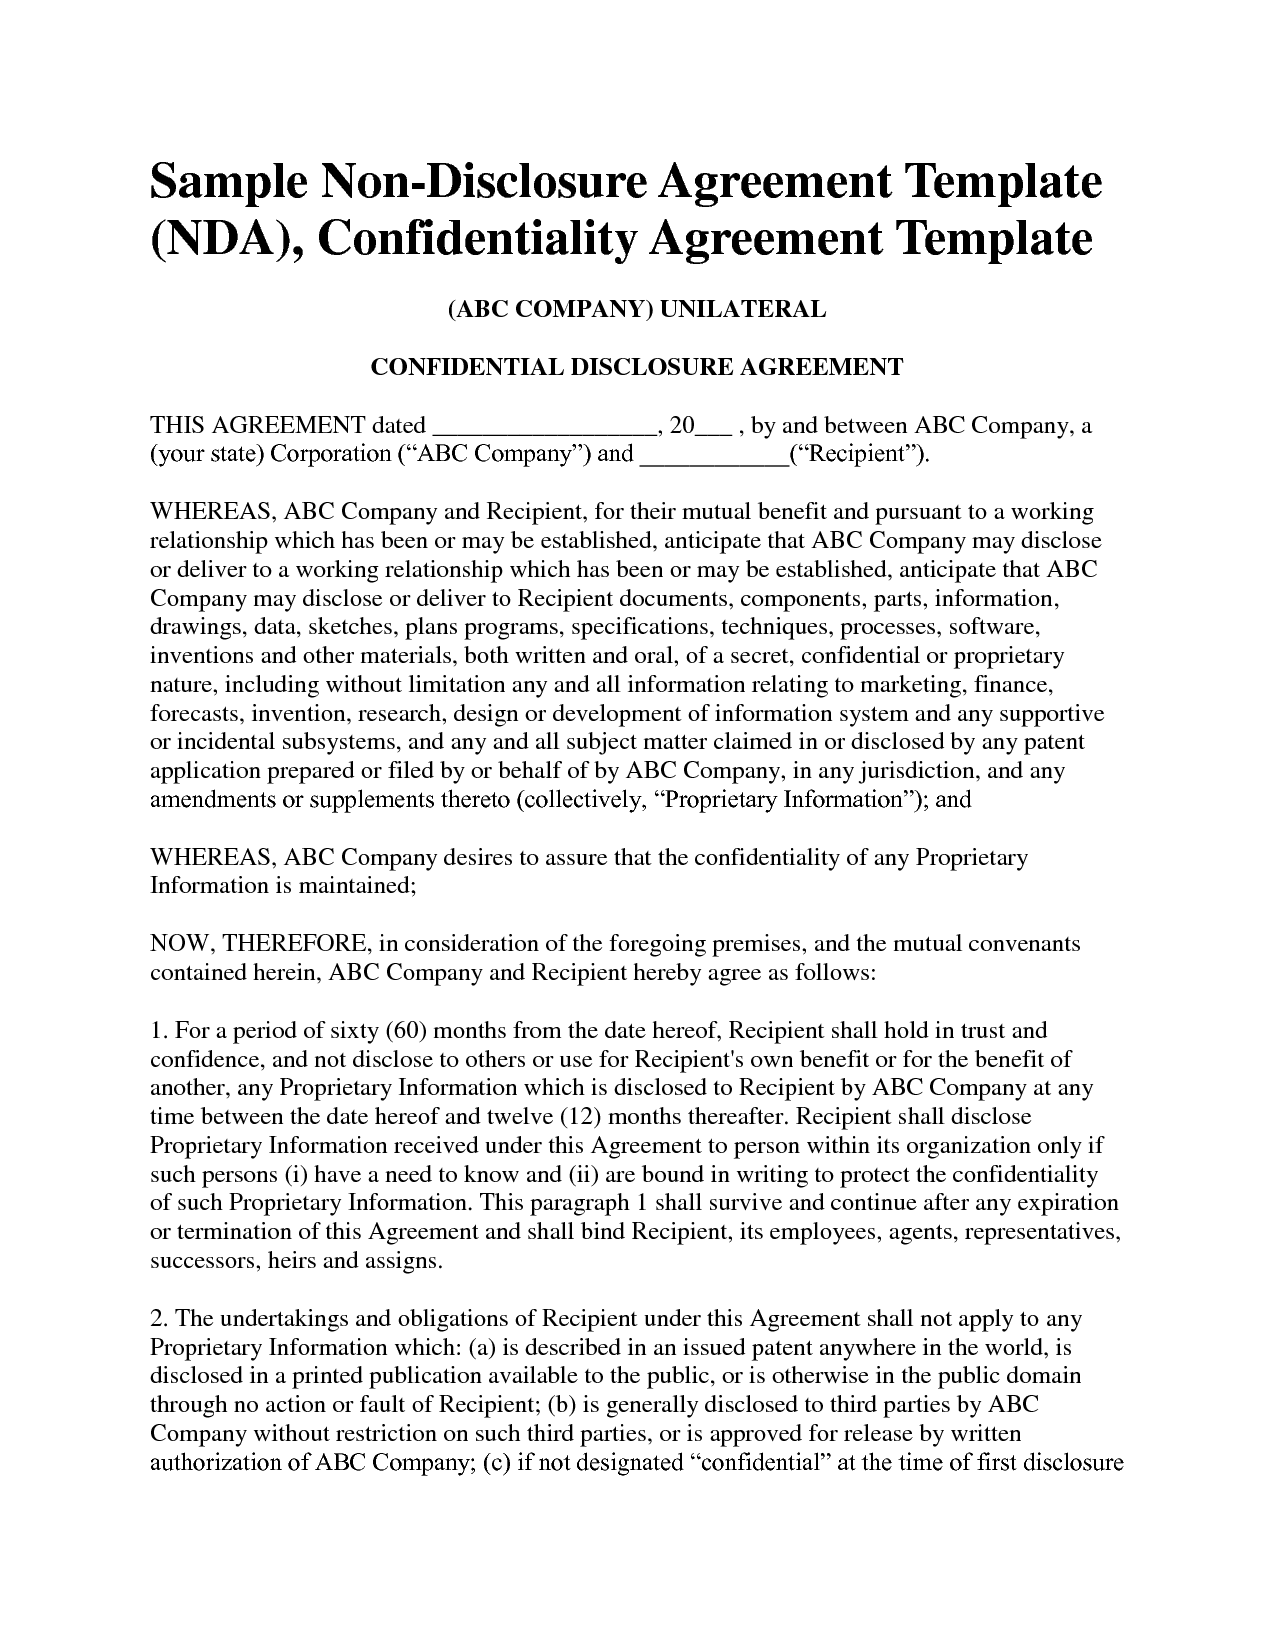 Non Disclosure Agreement Template Free Sample Nda Template Mvrsqrn – Medical Confidentiality Agreement